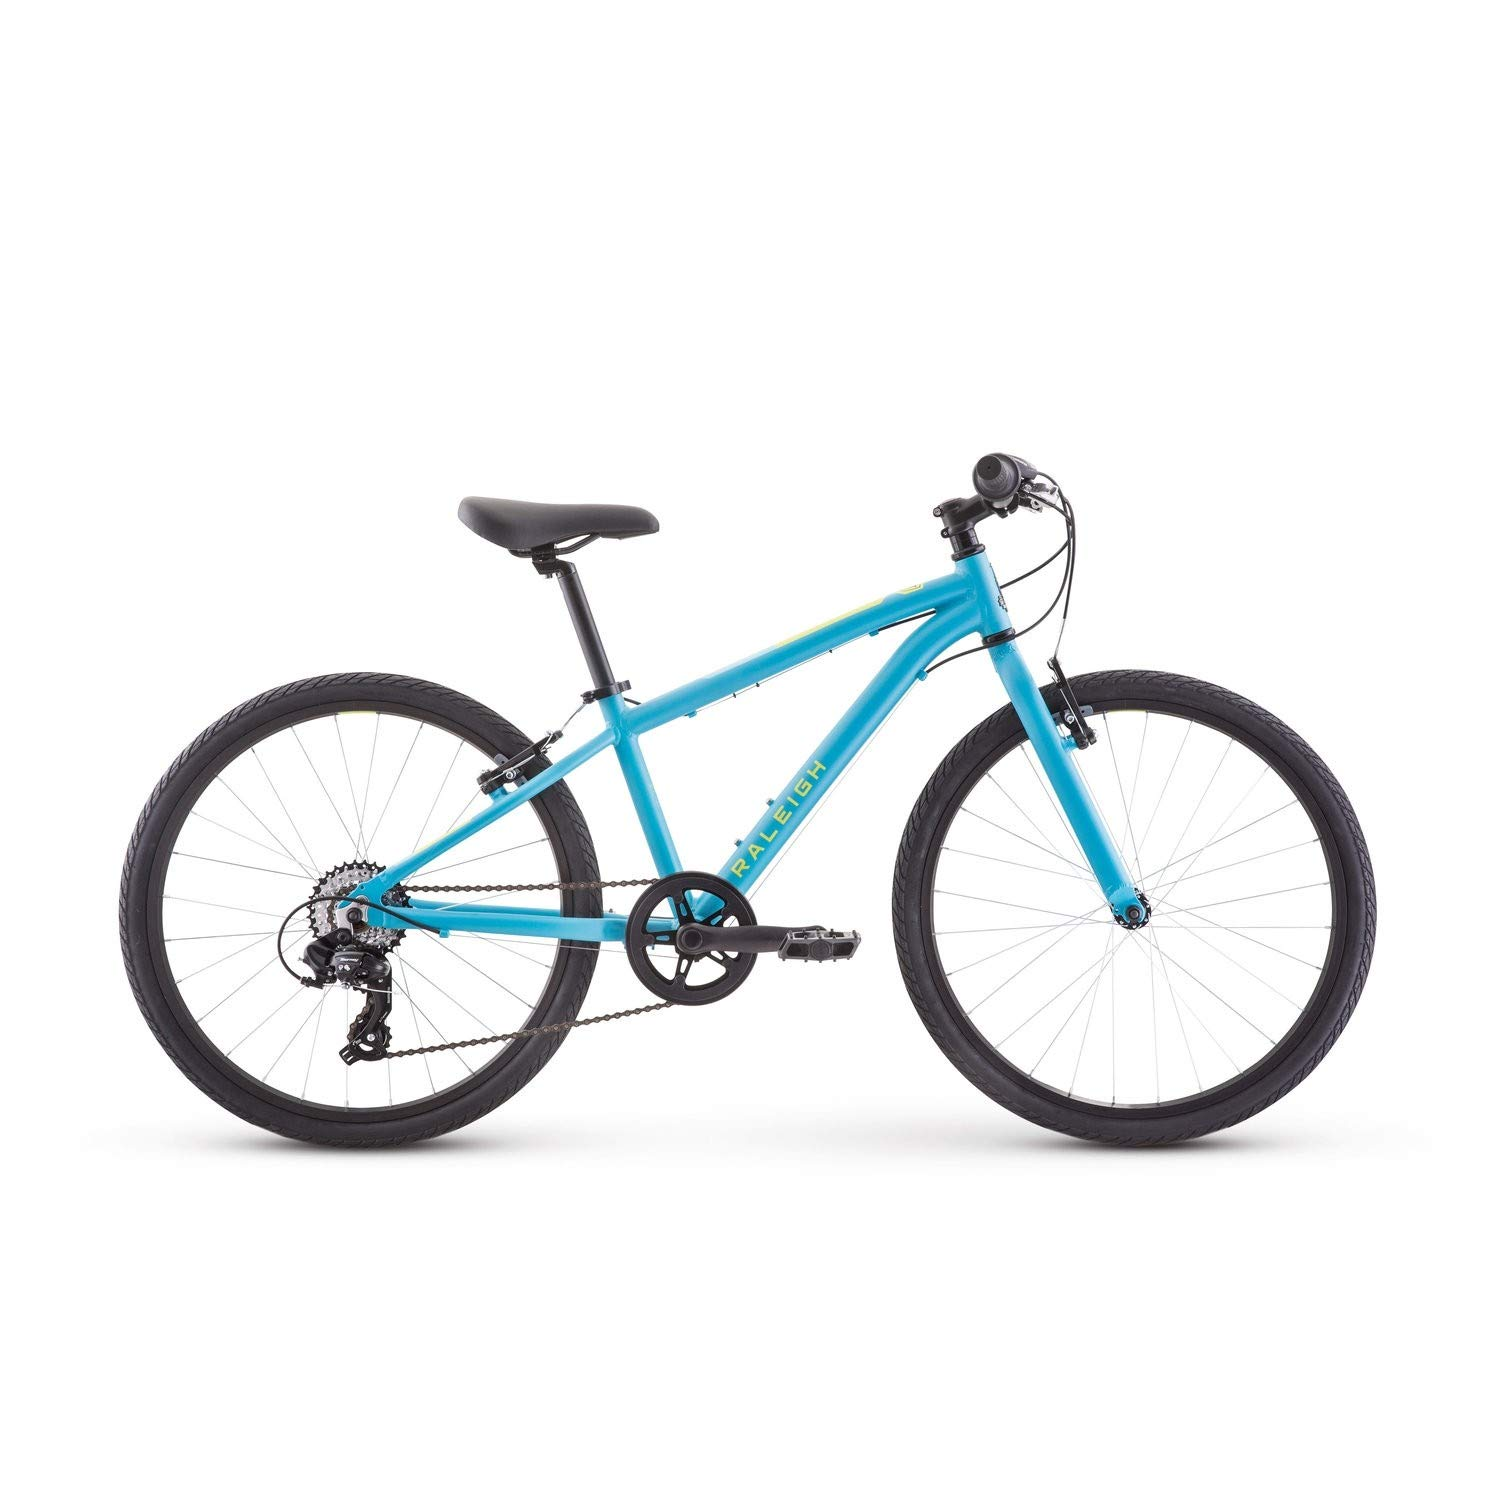 RALEIGH Bikes Cadent 24 Kids Flat Bar Road Bike for Boys Youth 8-12 Years Old, Blue